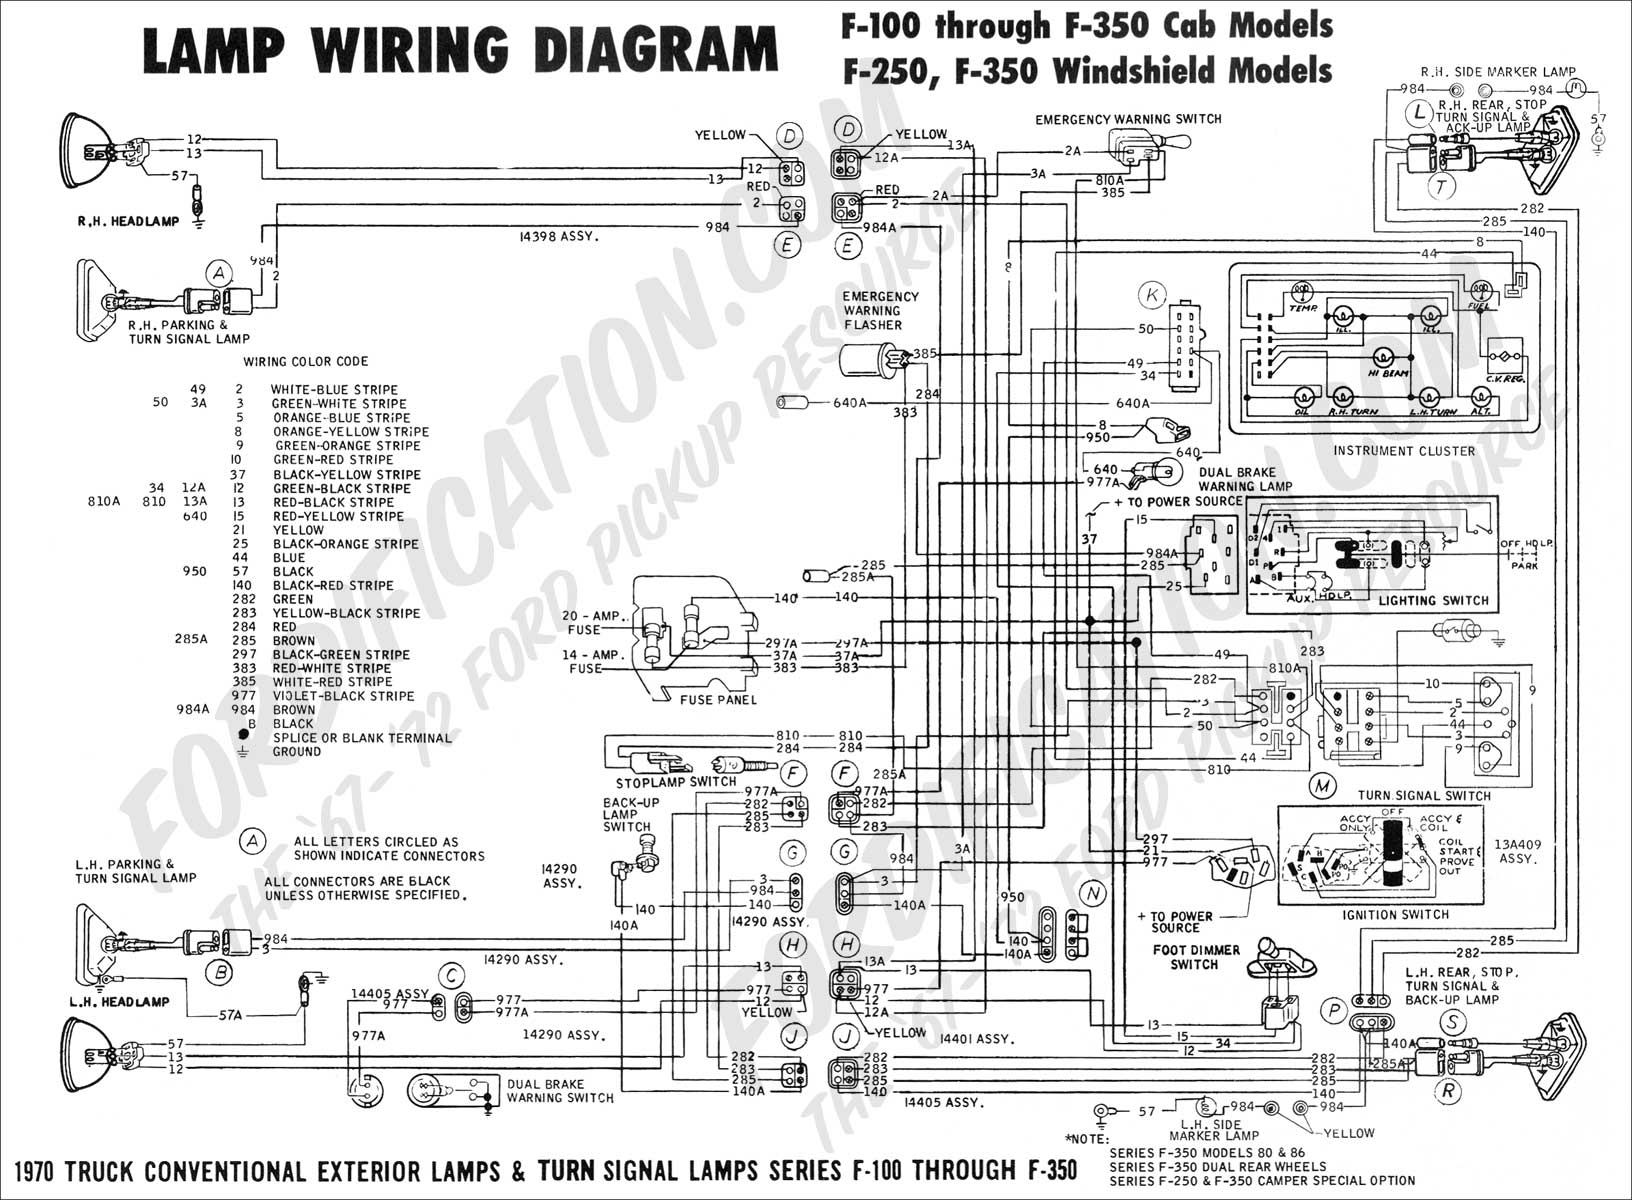 Ww Trailer Wiring Diagram | Wiring Library - W-W Trailer Wiring Diagram